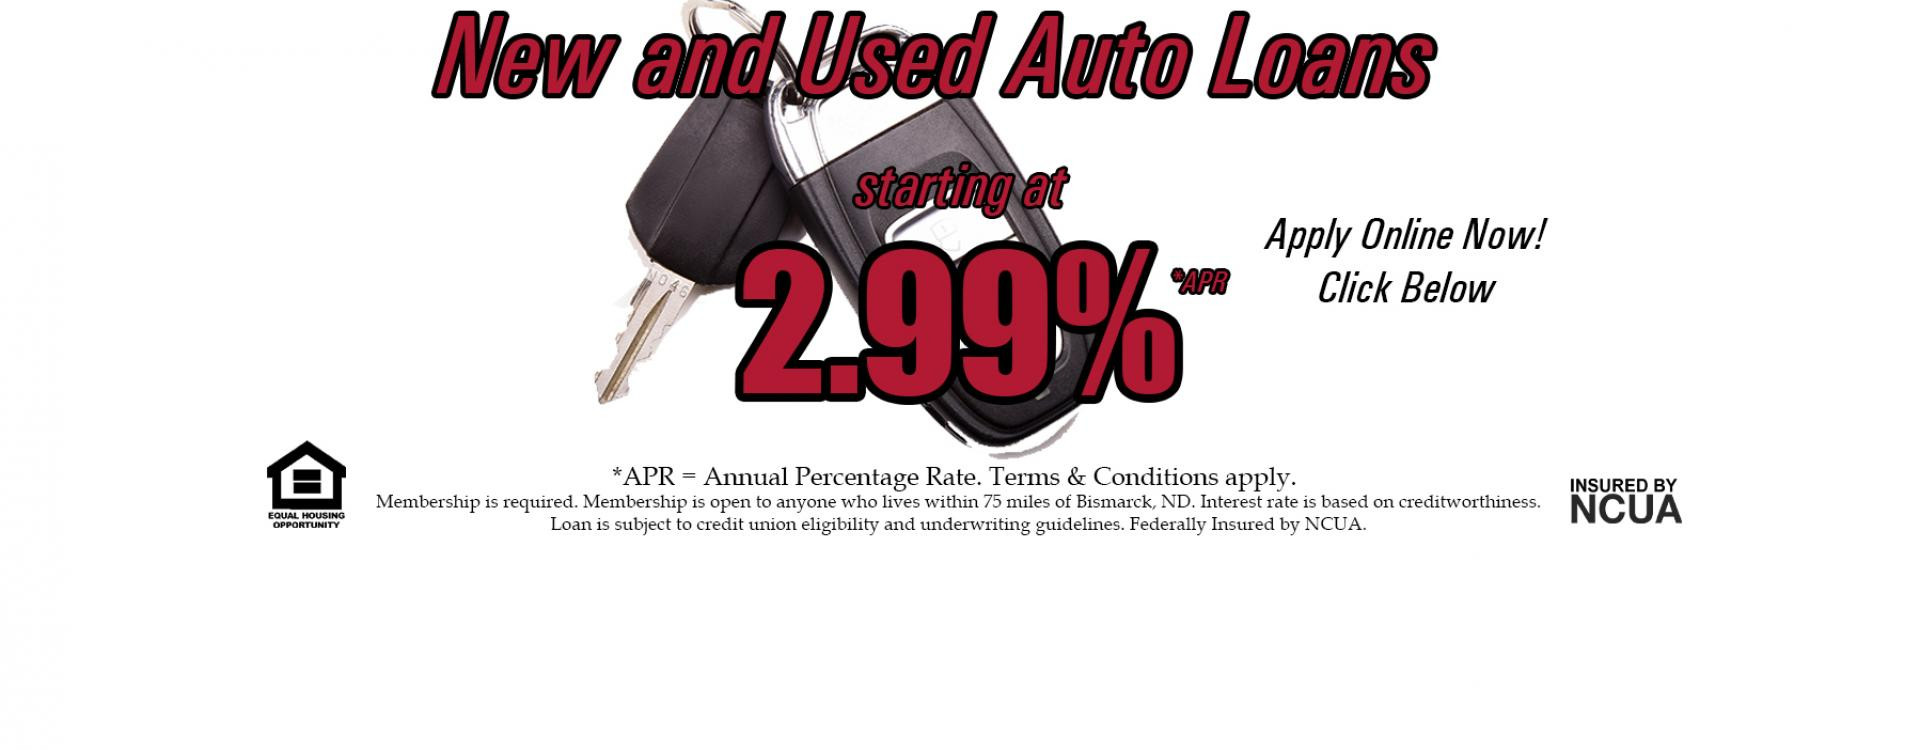 auto loans starting at 2.99% apr